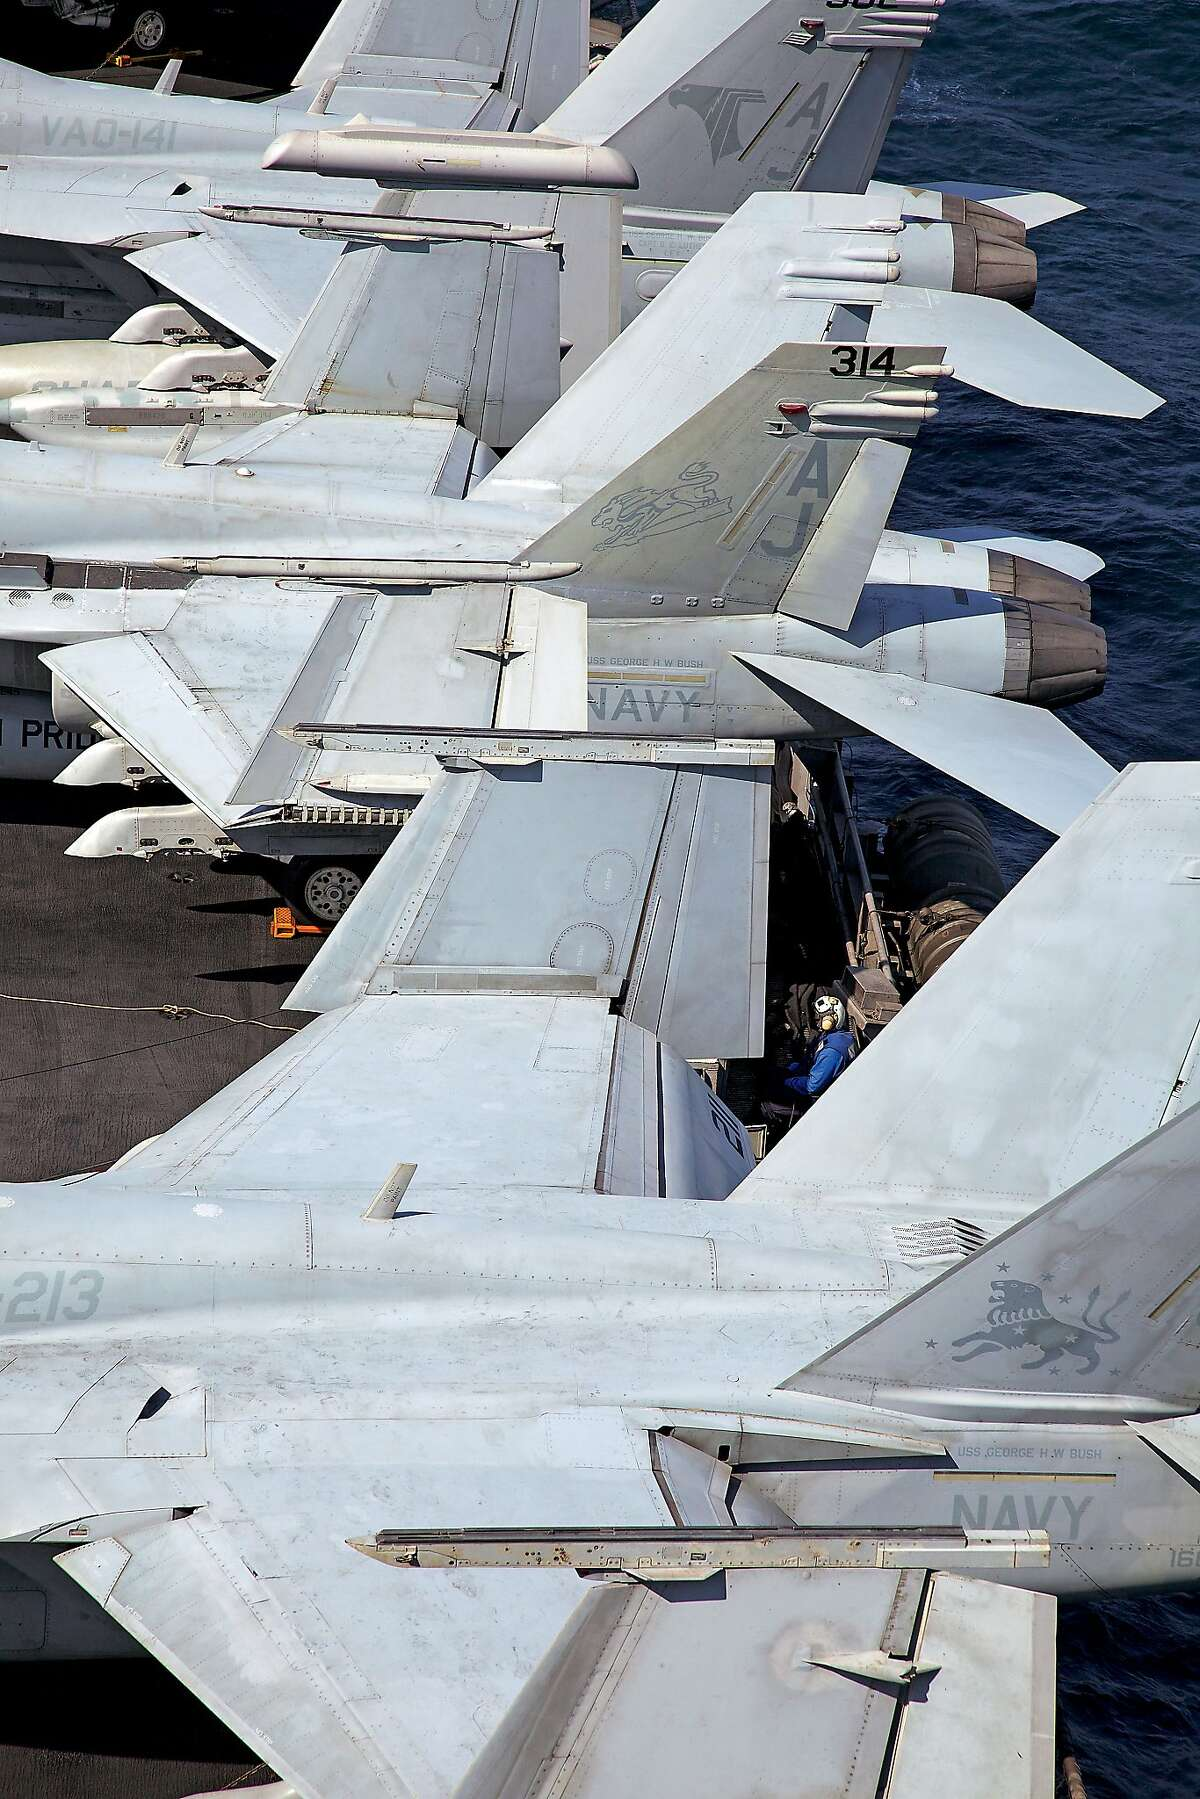 USA. American aircraft carrier USS George H W Bush. NImitz class. Nuclear powered with a crew of sailors and airmen of over 5,000. Somewhere in the Arabian Gulf. Jet fighters parked up on deck.